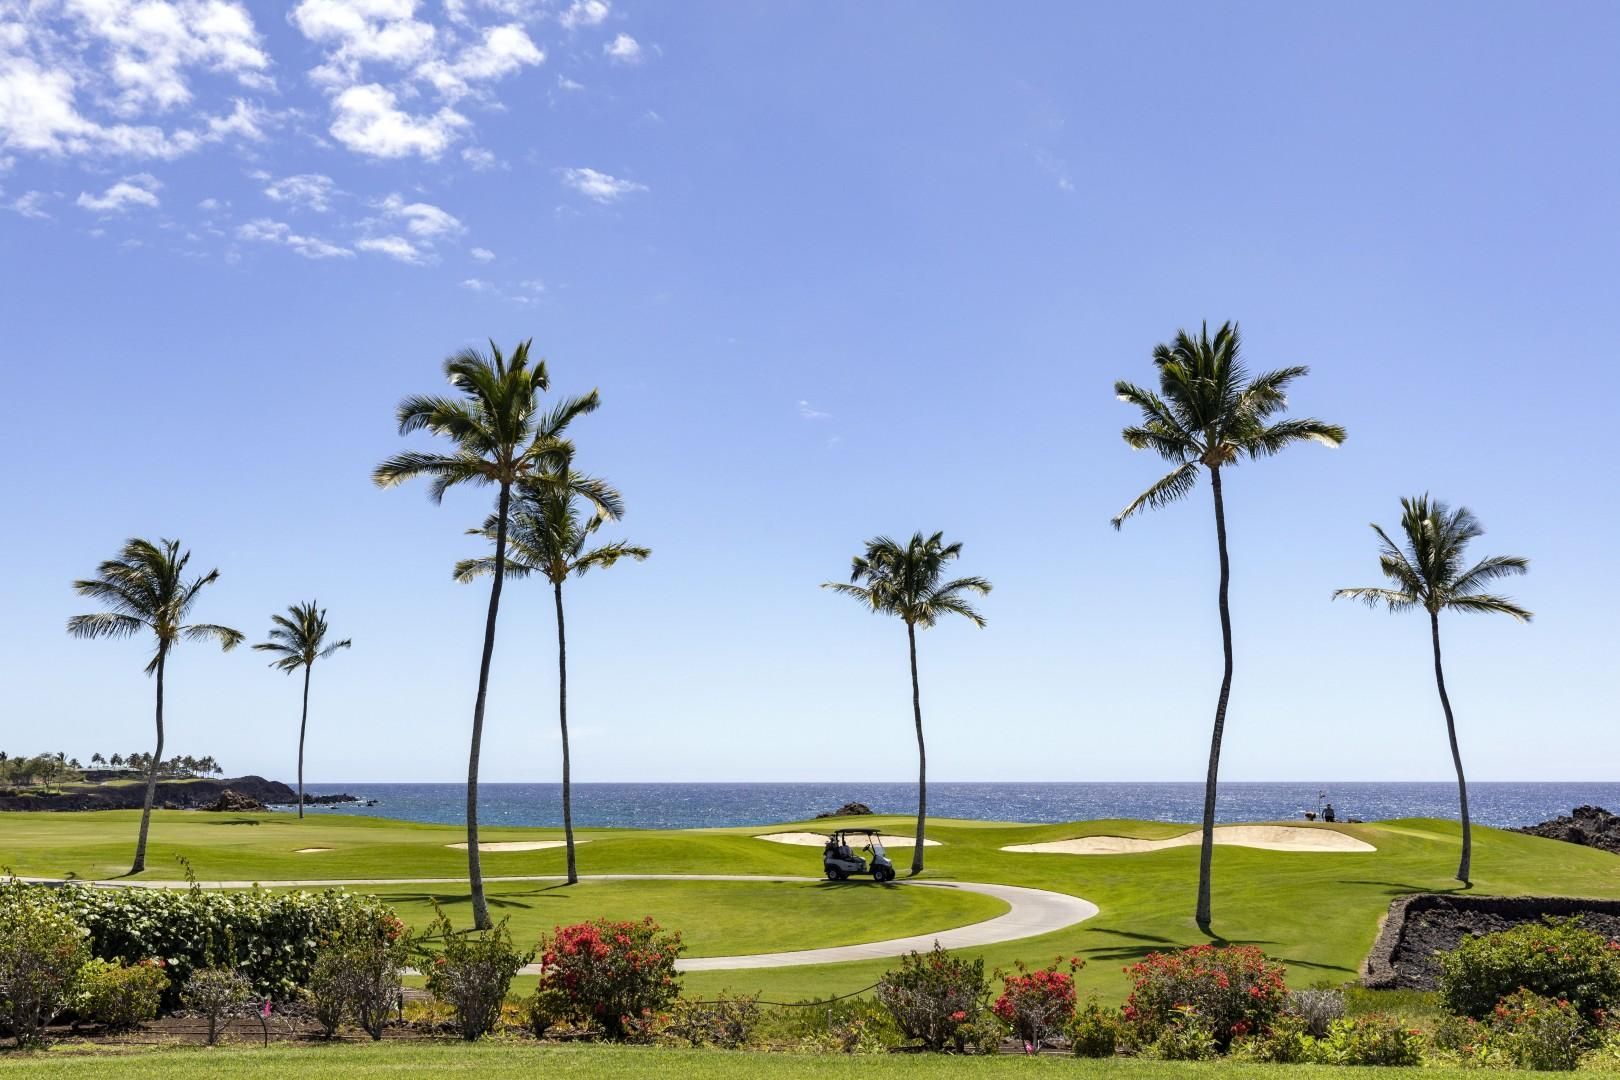 Views of the 13th fairway and ocean.